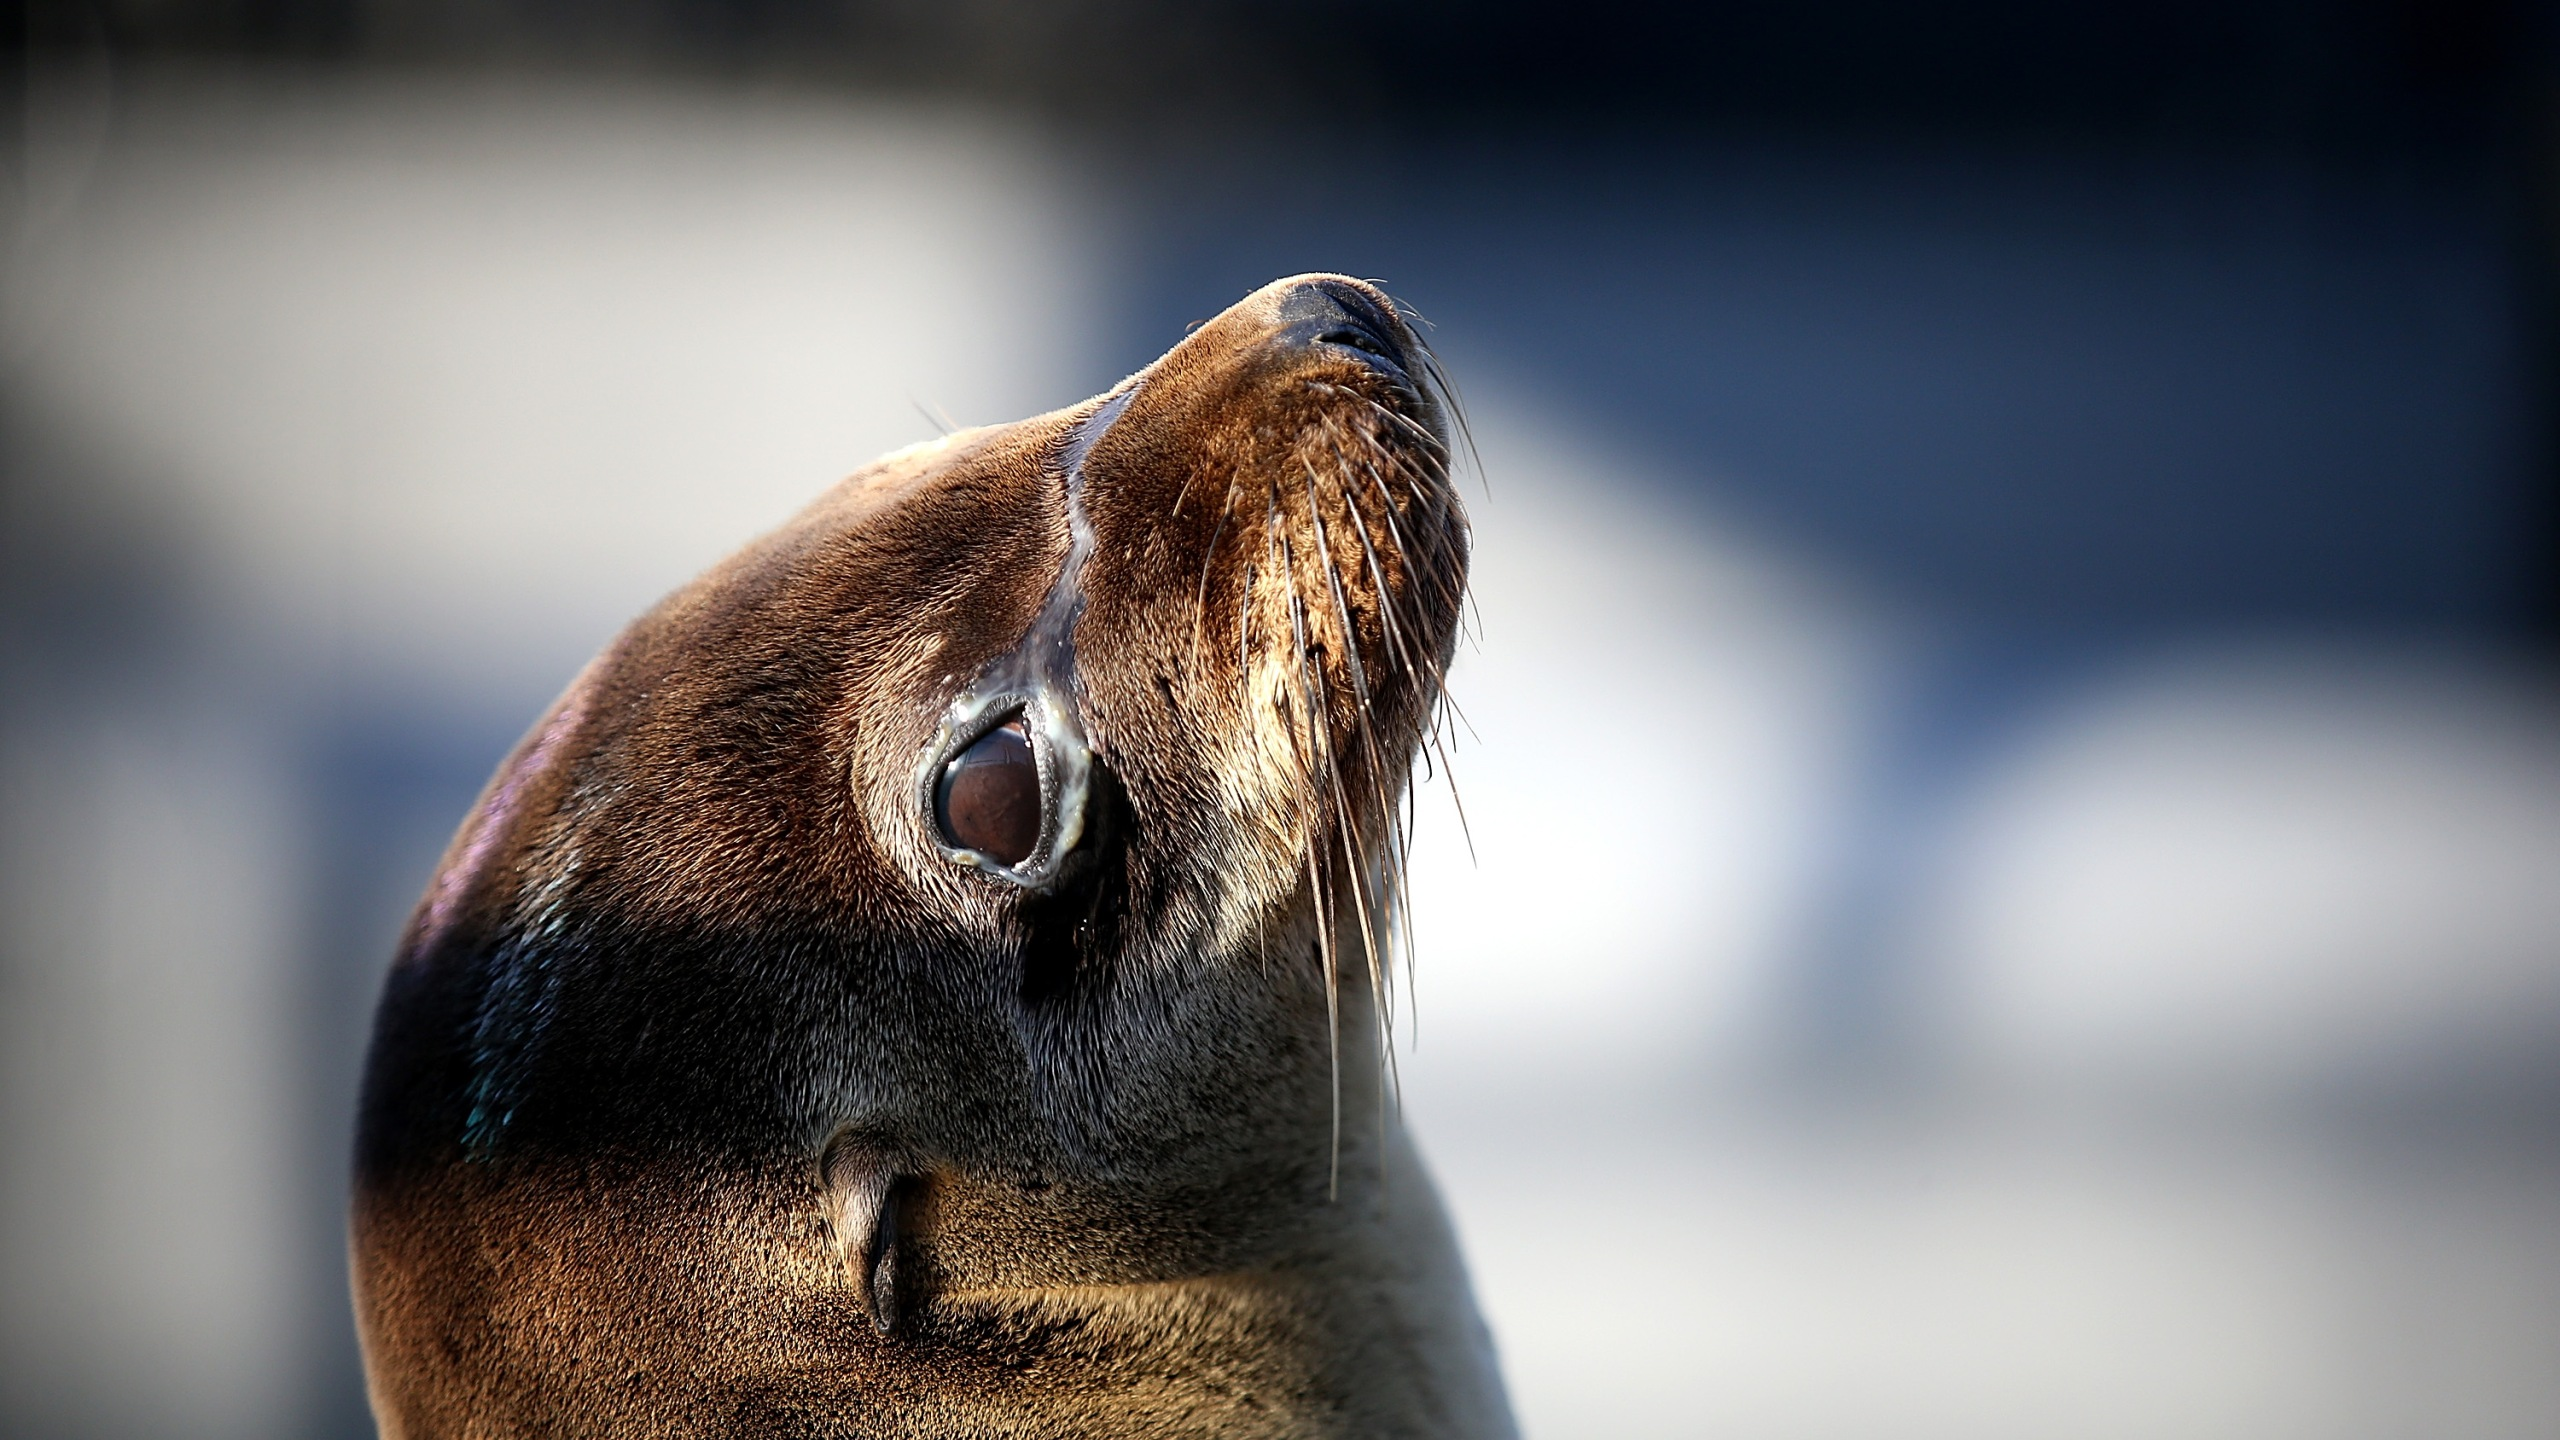 Malnourished Sea Lions Continued To Be Rescued Off California Shores_687165